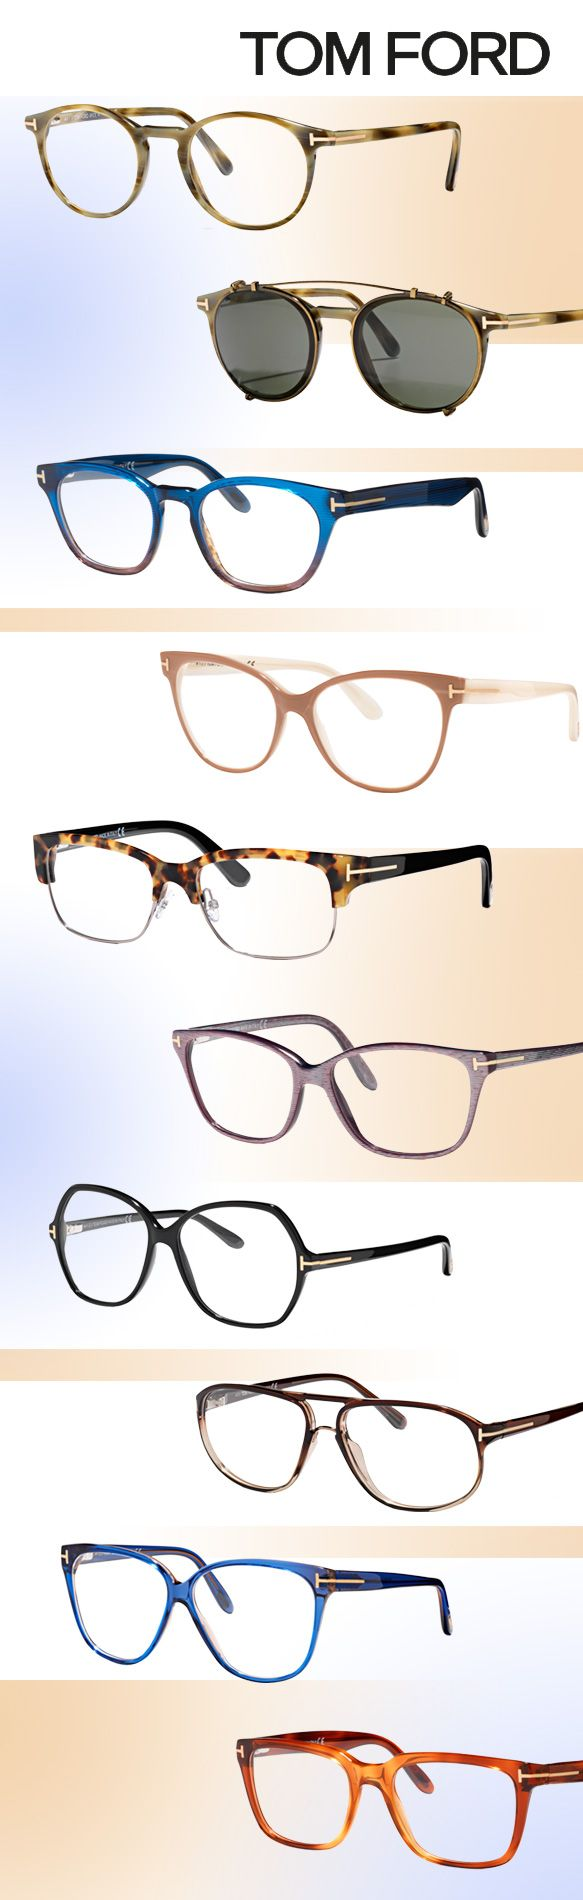 Tom Ford Eyewear Steeped in Daring Style: http://eyecessorizeblog.com/2014/10/tom-ford-eyewear-steeped-daring-style/